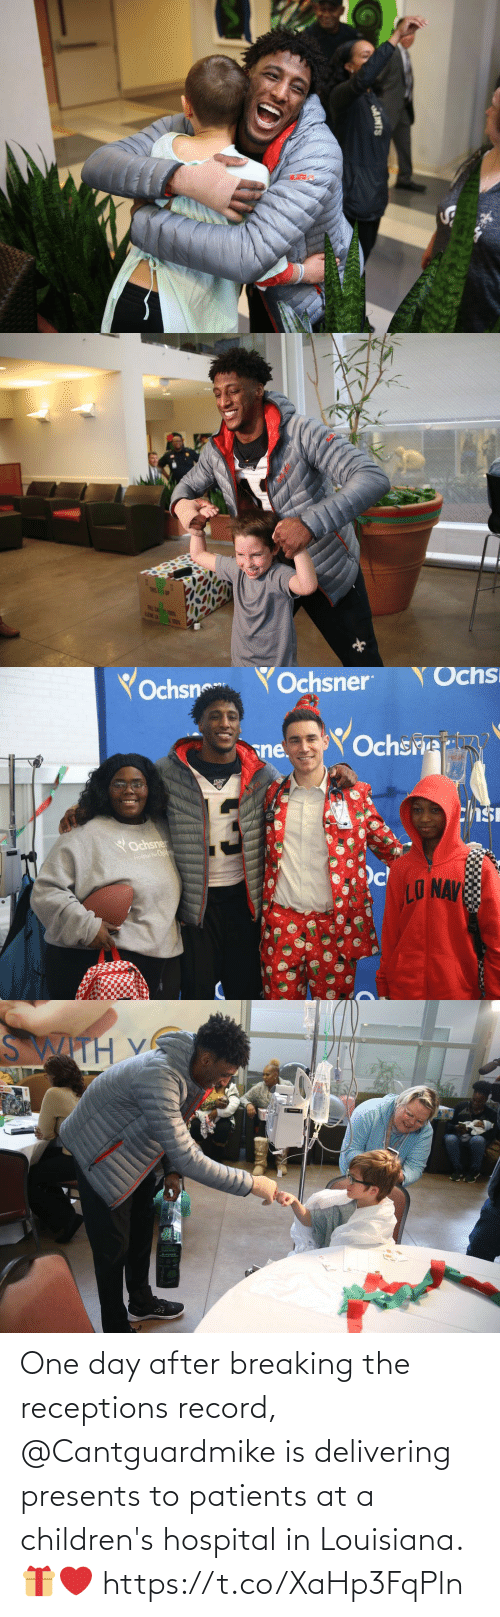 Children's Hospital: AINTS   TRIS! 1P  FRLE CA T  LENE LA   Yochsn  YOchsner  Ochs  Ochsre  sne.  chsi  YOchsner  Hospai For Childwan  LO NAV   SWITH V One day after breaking the receptions record, @Cantguardmike is delivering presents to patients at a children's hospital in Louisiana. 🎁❤️ https://t.co/XaHp3FqPln